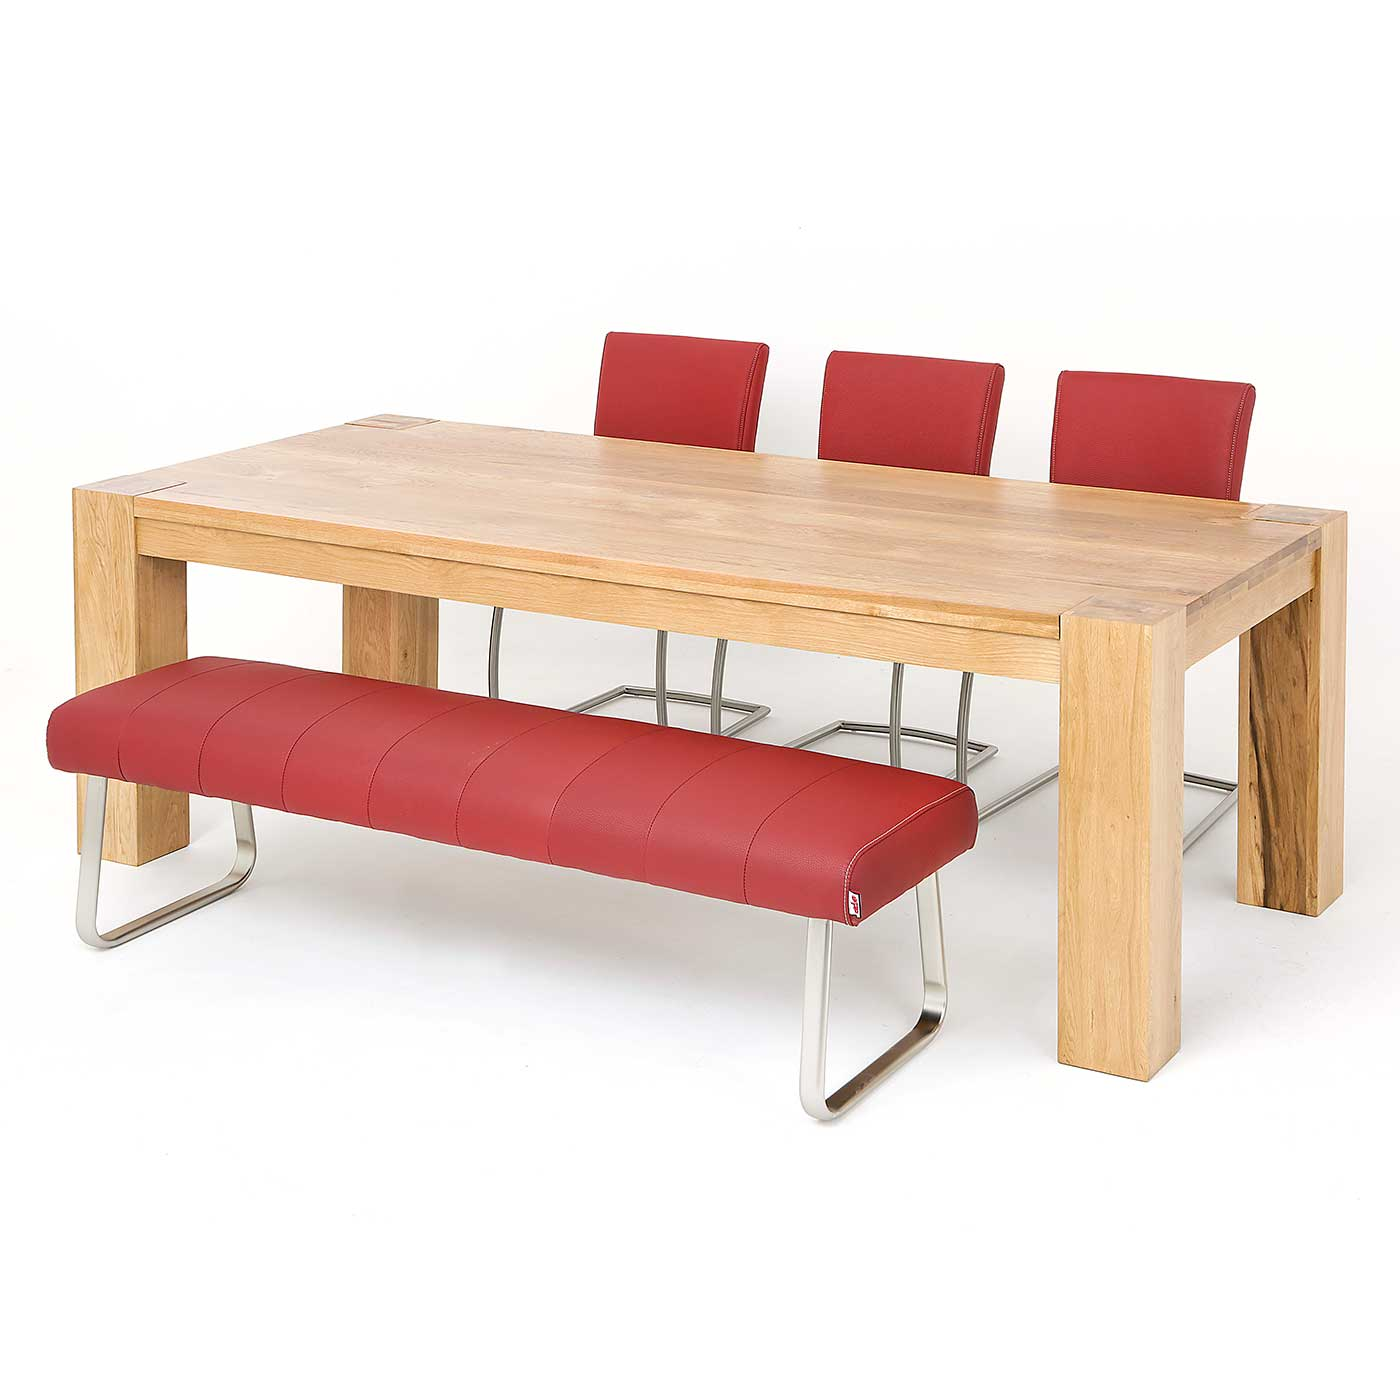 Lincoln Table Terrano Red